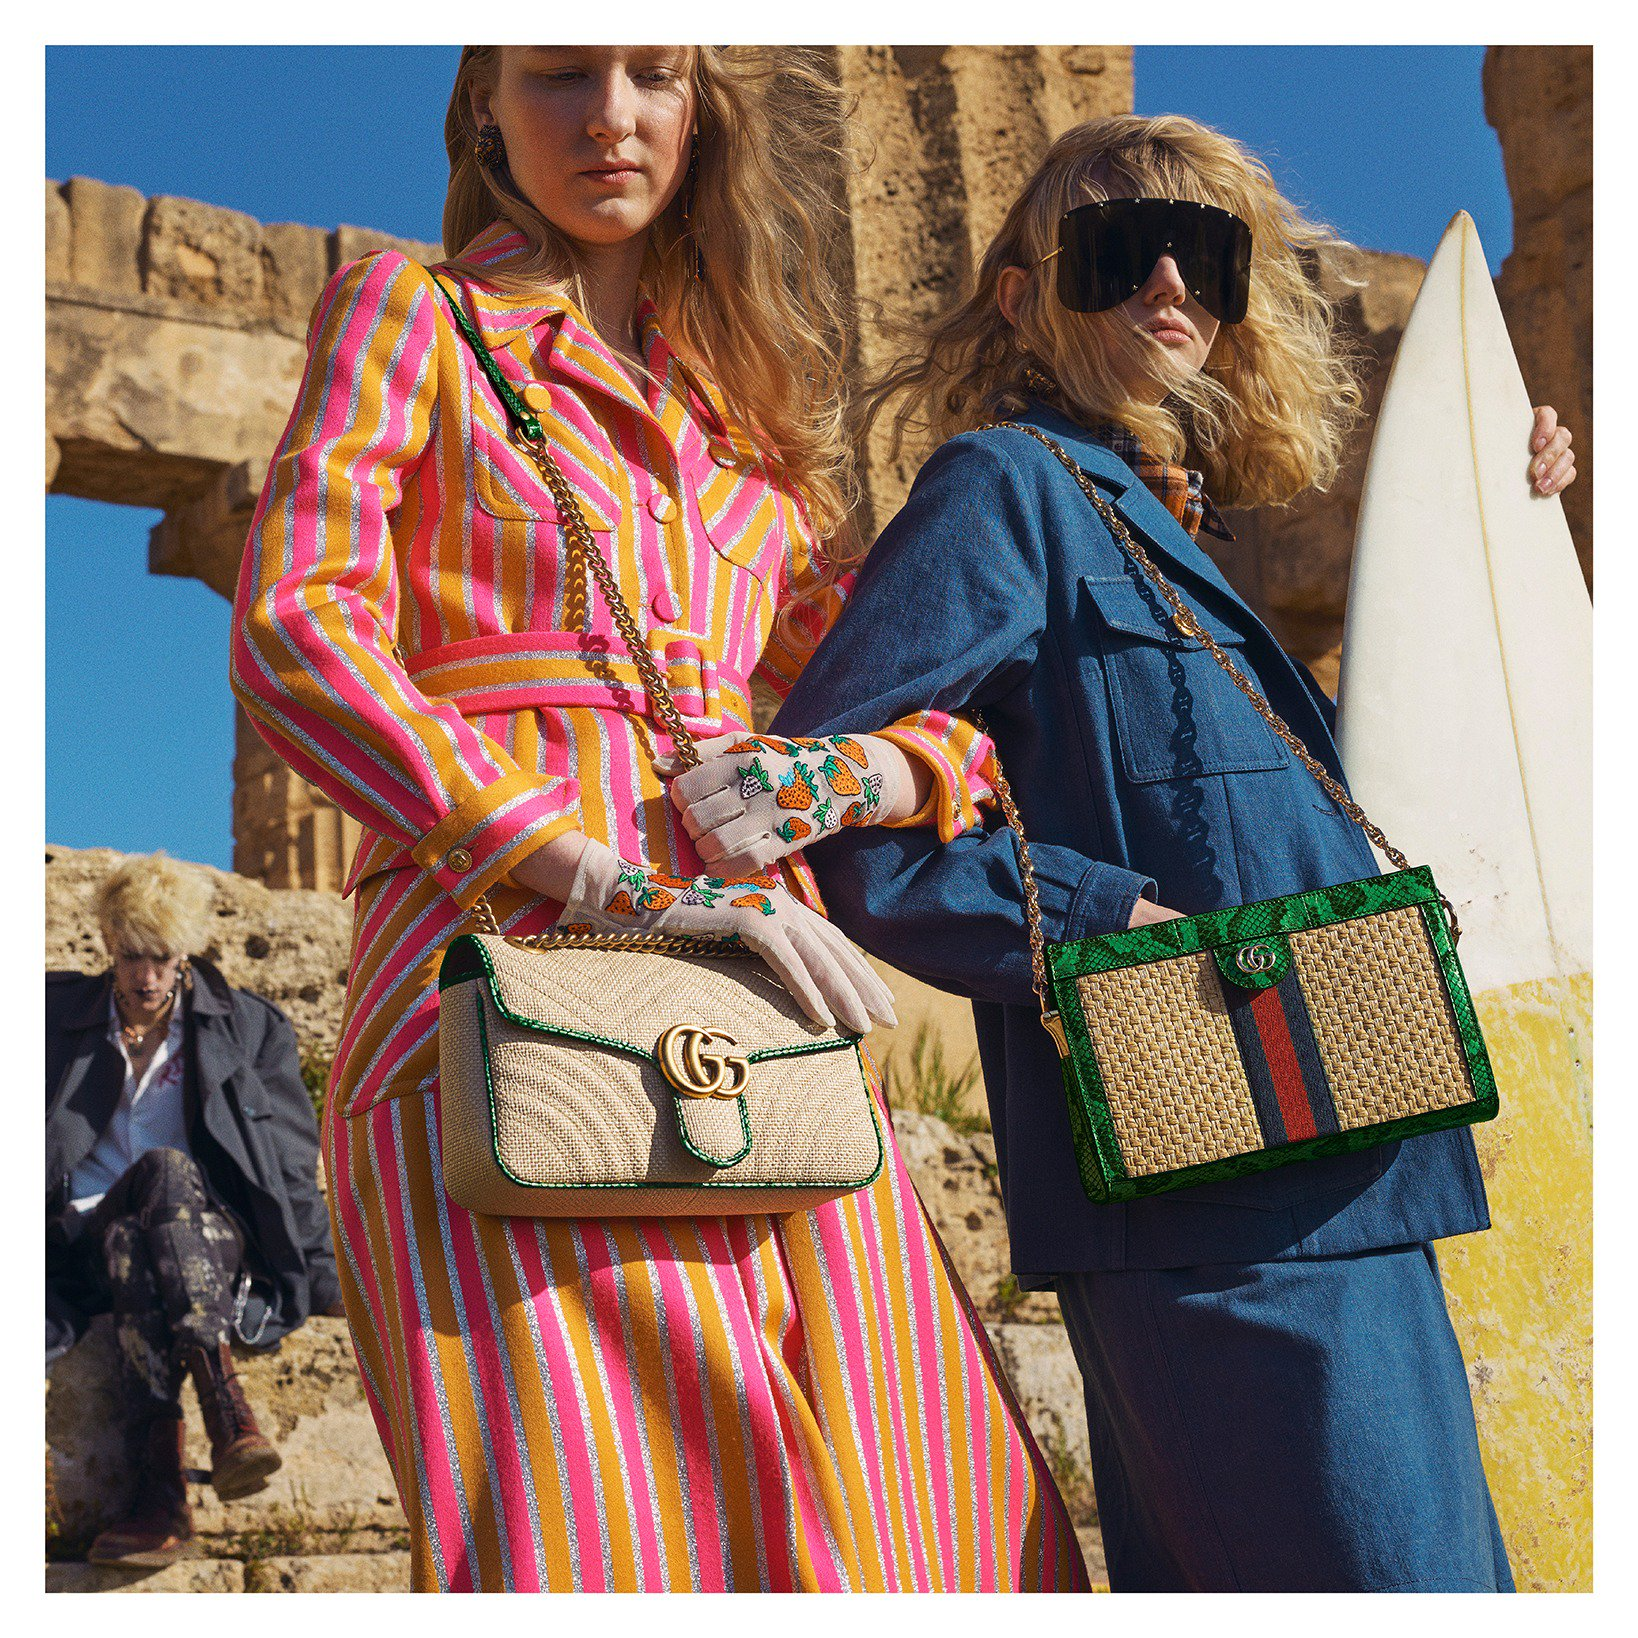 Summery materials of raffia and straw are crafted into bags from the Towards Summer #GucciPreFall19 collection by #AlessandroMichele. The shoulder bags include a #GucciOphidia design with precious leather trim, and a #GGMarmont style, available exclusively online. https://t.co/OAFlqgZ5vj